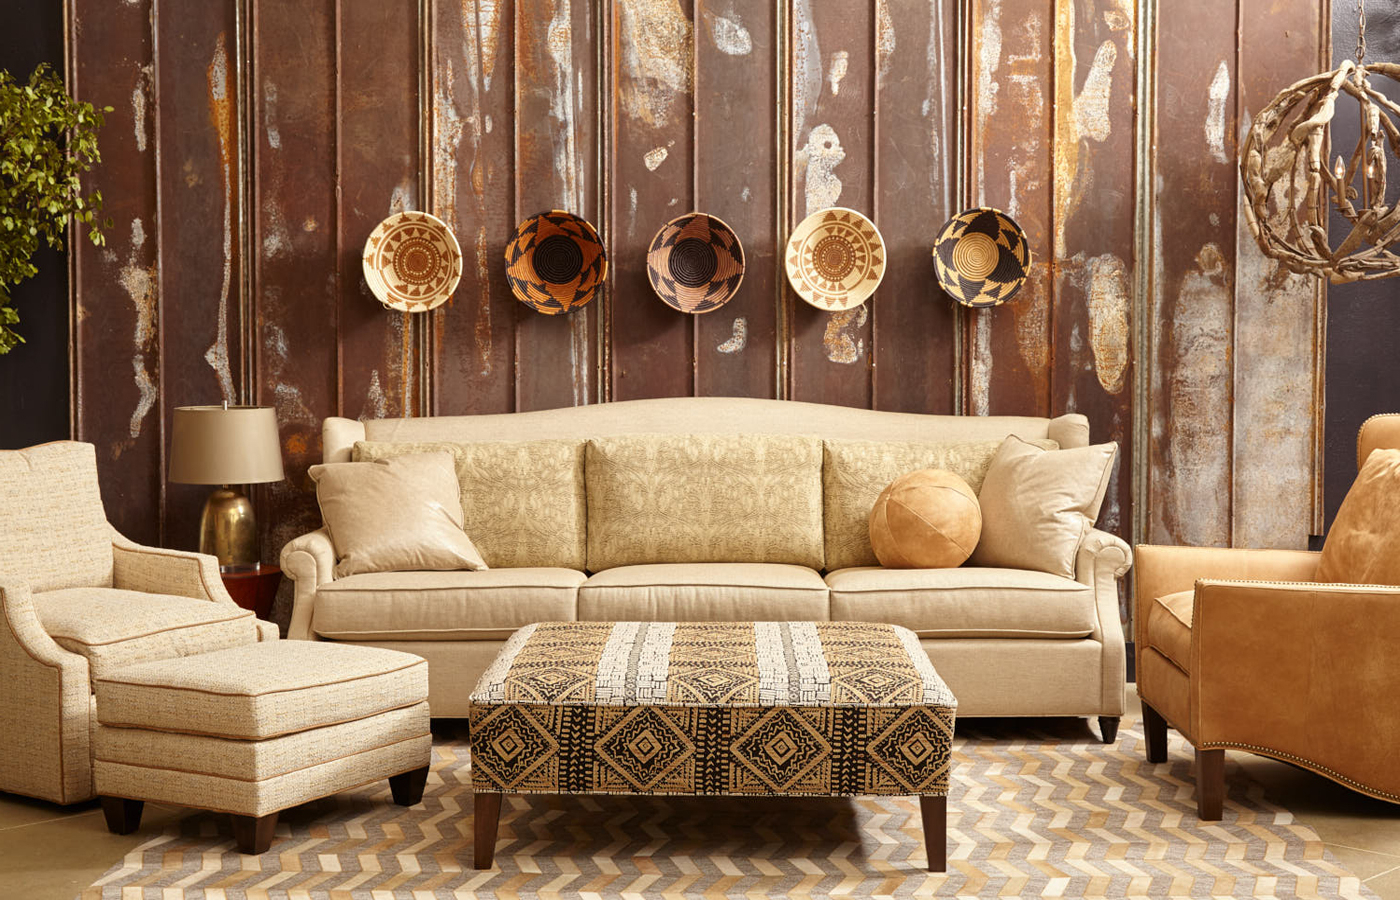 Favorite Norwalk Furniture Intended For Norwalk Sofa And Chairs (View 4 of 20)